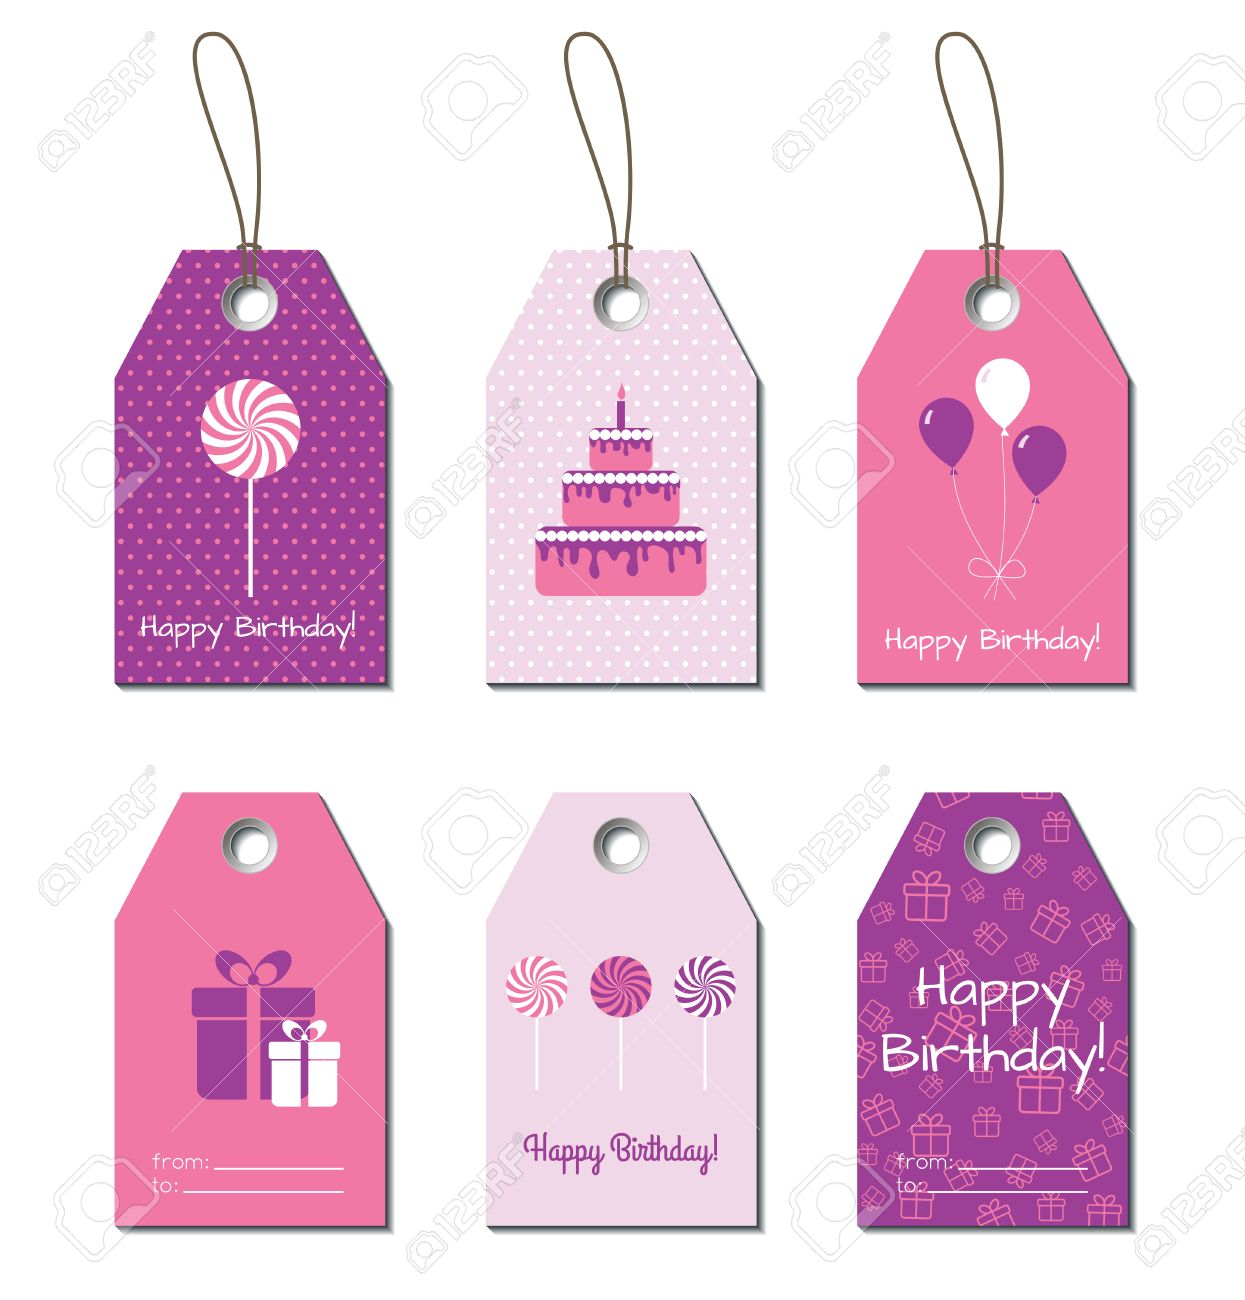 Happy Birthday Tags Greetings Small Gift Cards Labels For Gifts Design